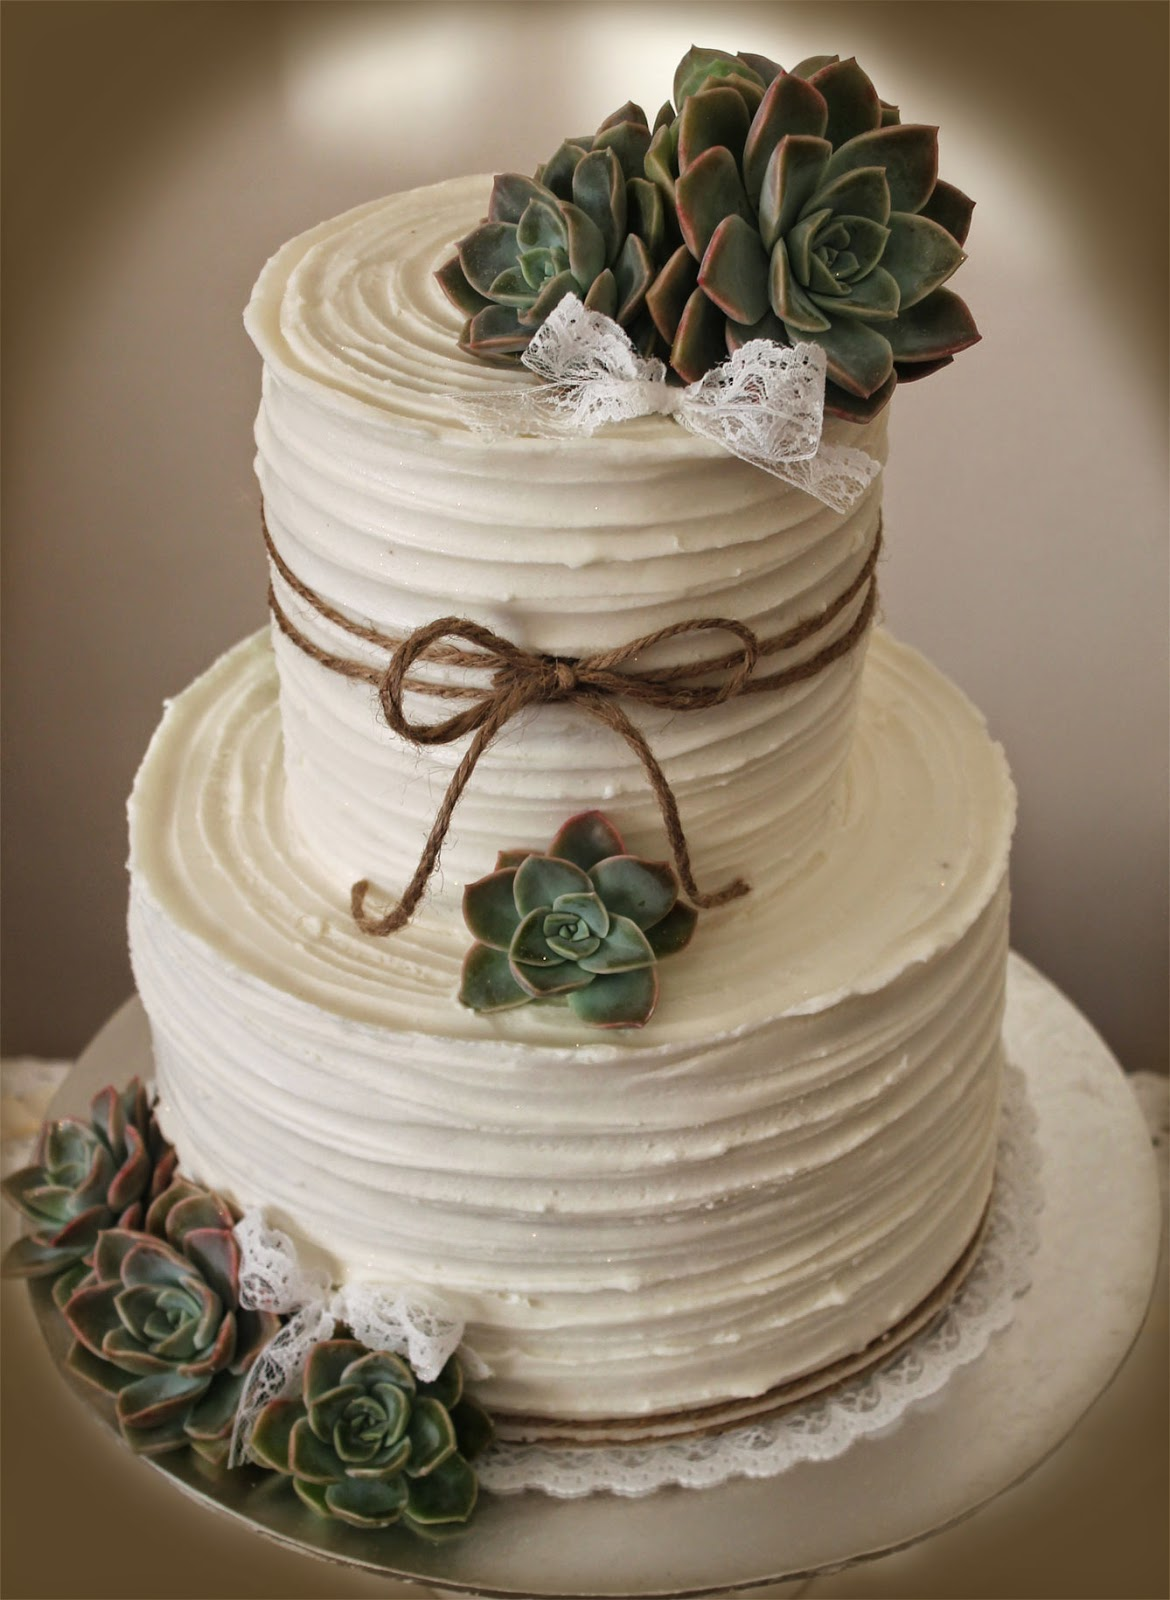 Delana's Cakes: Rustic Wedding Cake with succulents